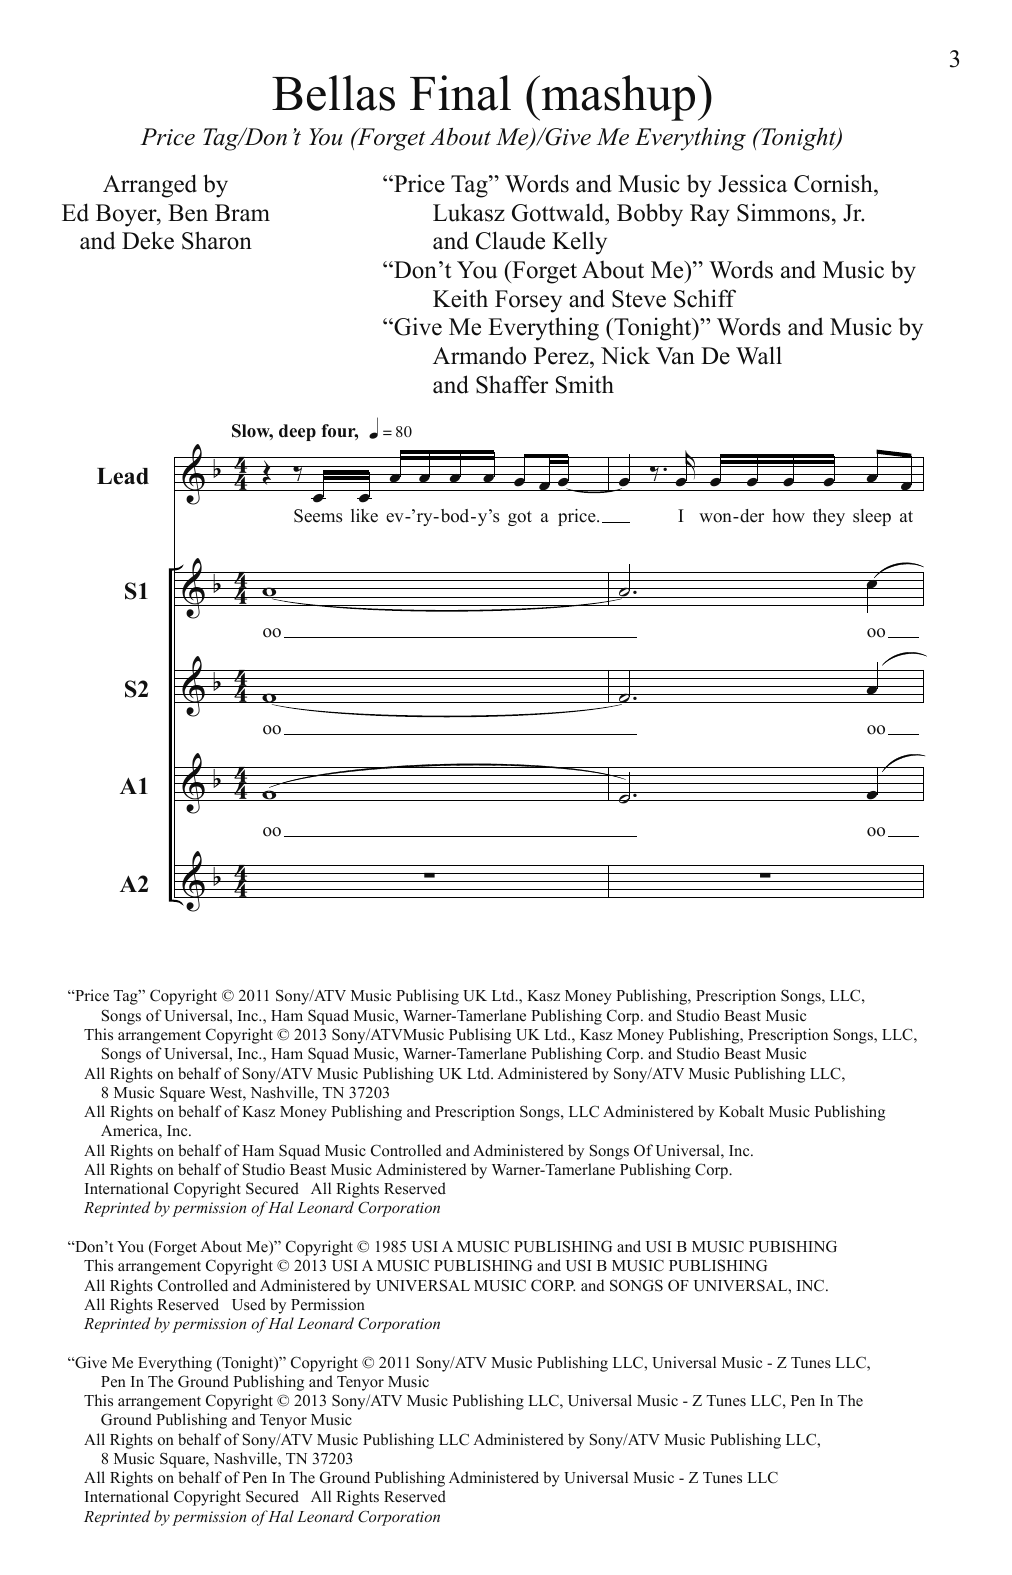 Pitch Perfect (Movie) Bellas Finals (Mashup) (from Pitch Perfect)(arr. Deke Sharon) sheet music notes and chords. Download Printable PDF.